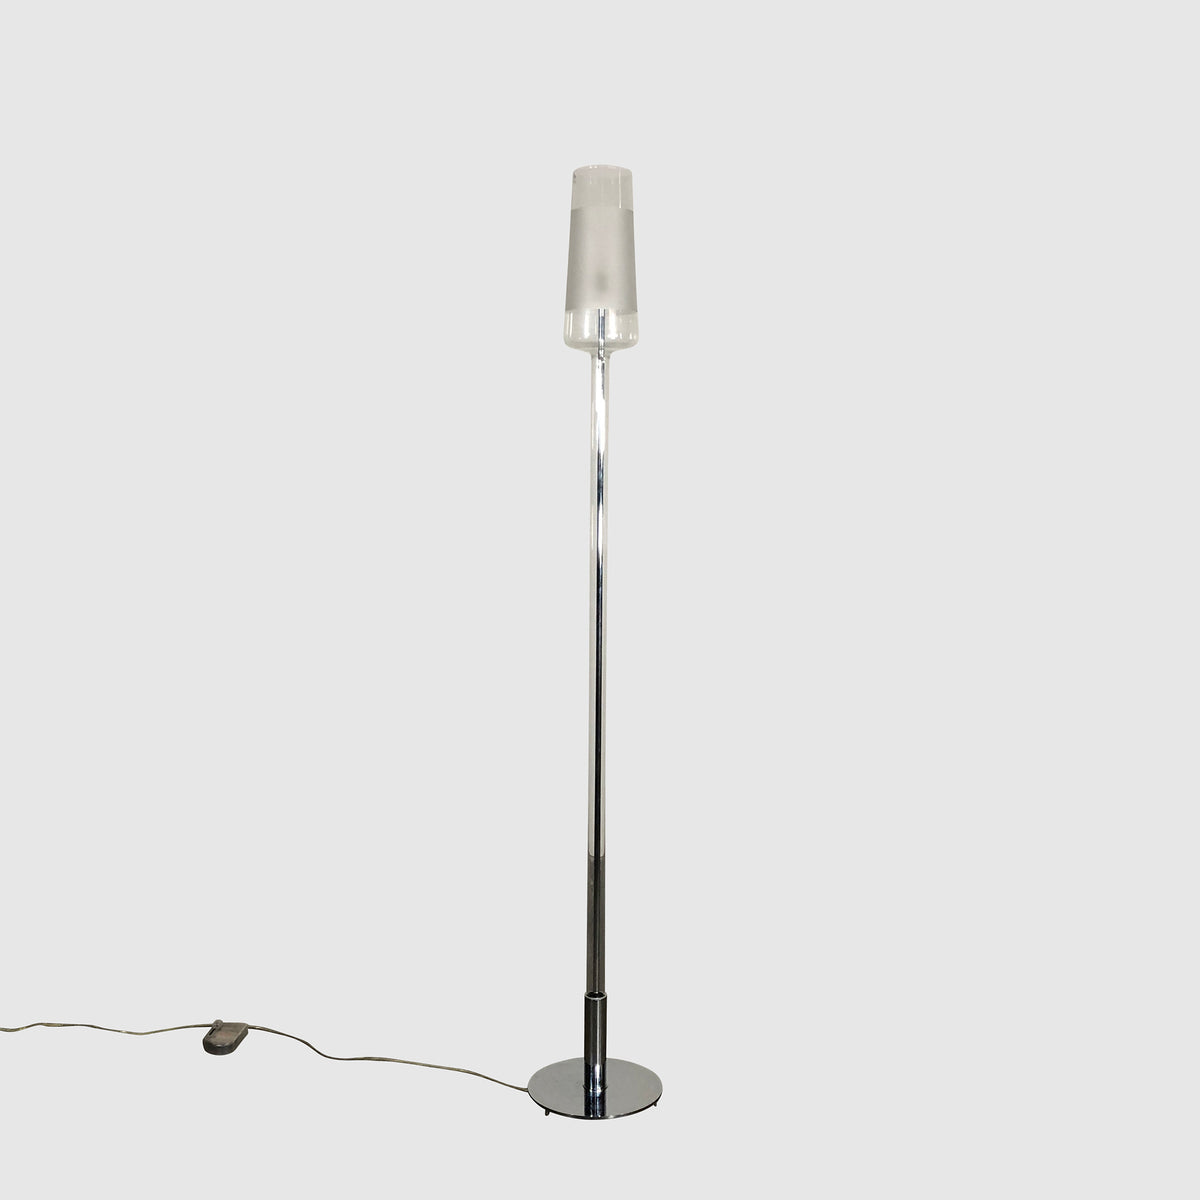 Penta Light Luume Glass Floor Lamp by Umberto Asnago